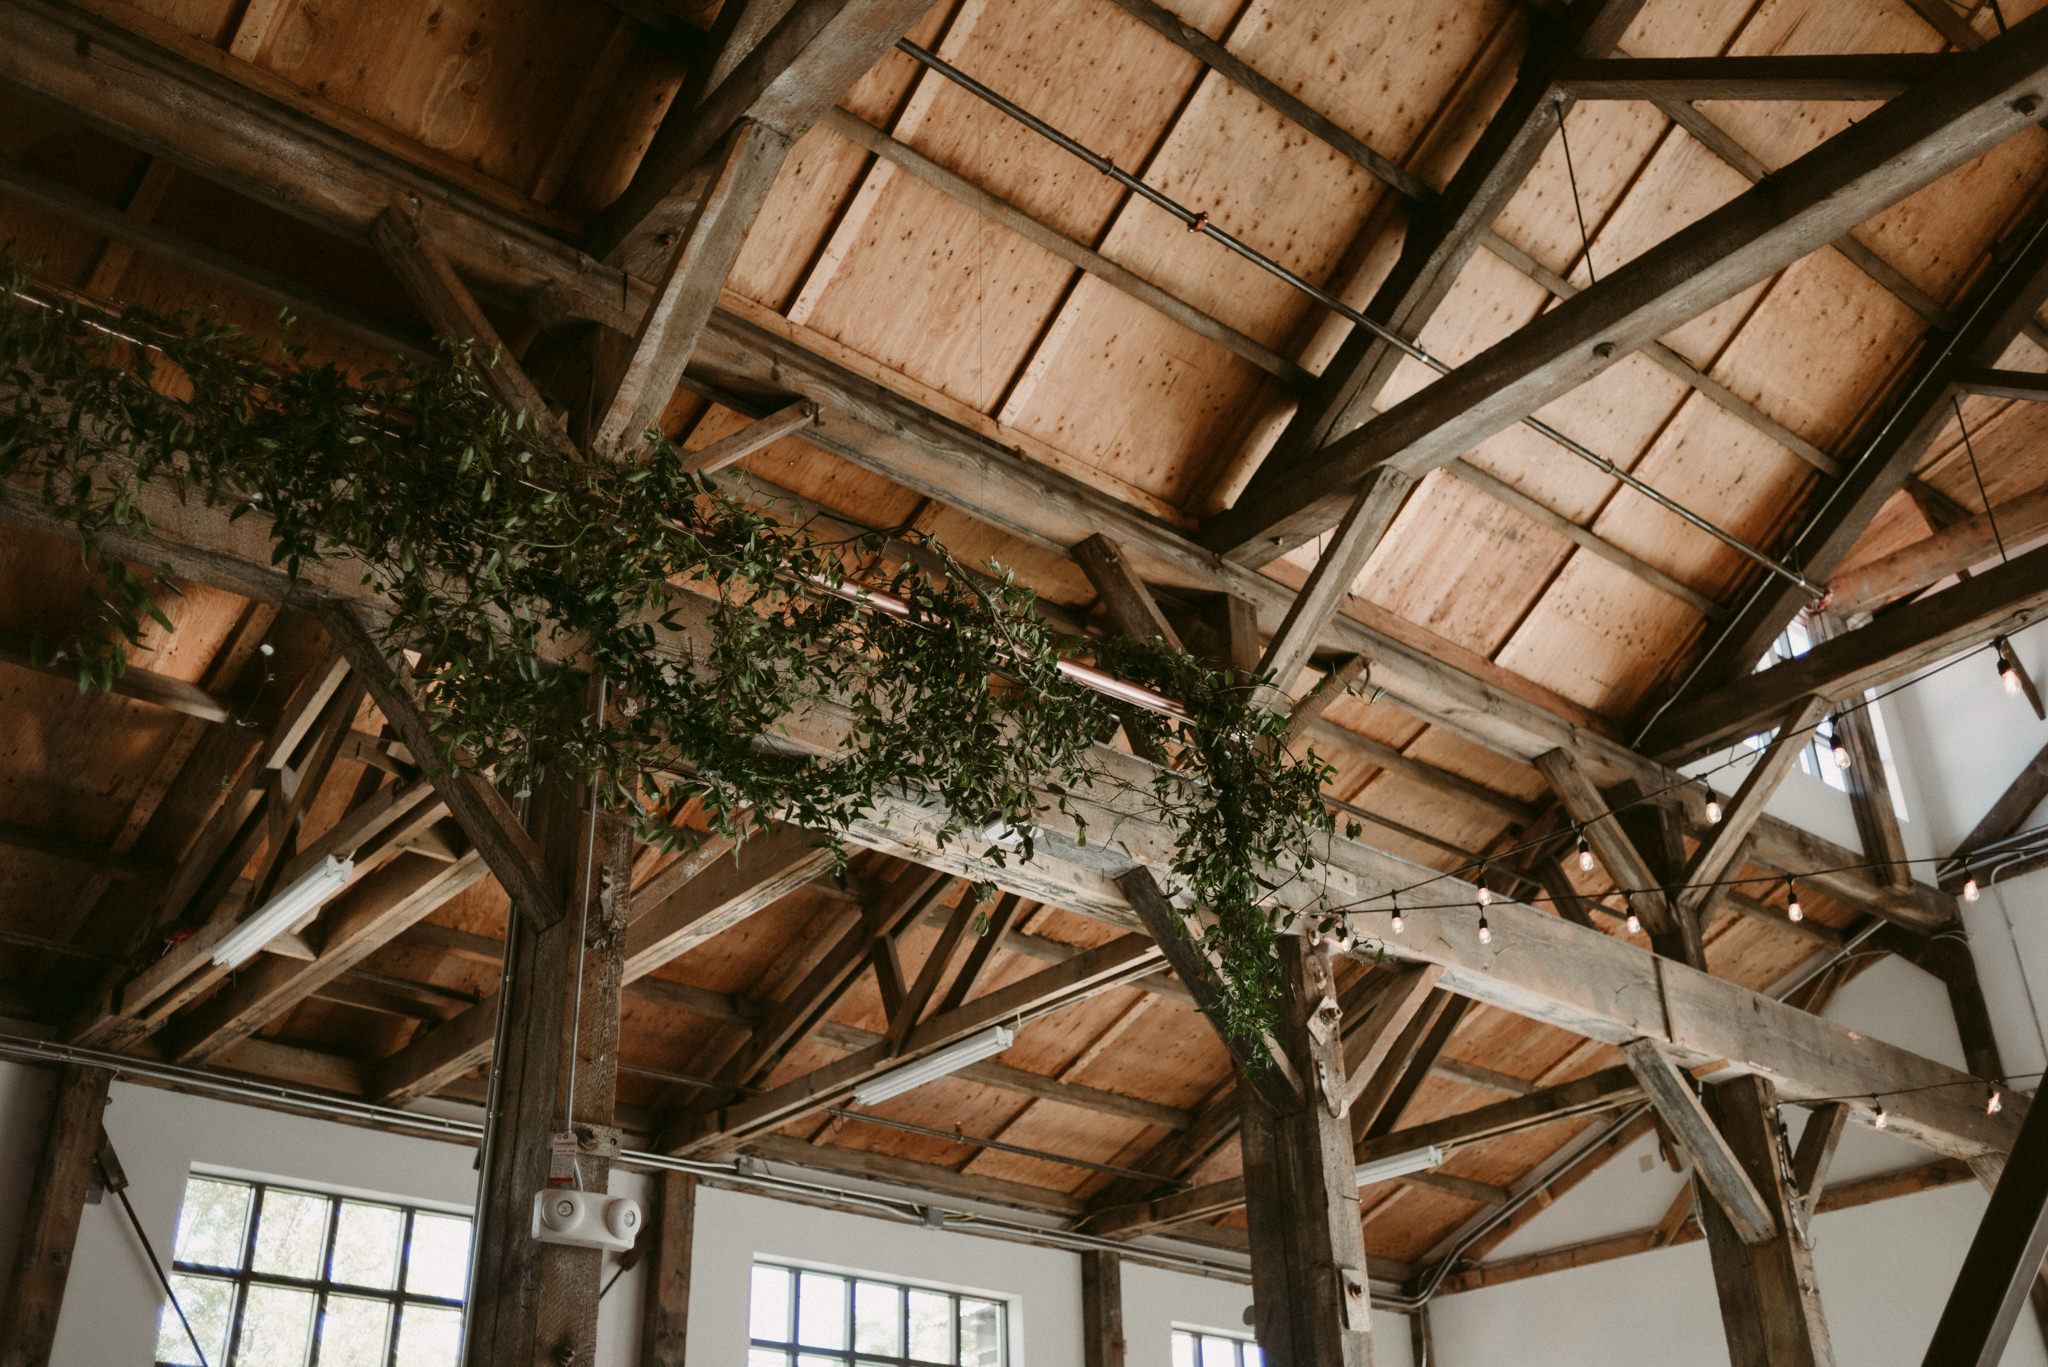 large wood beams and vines